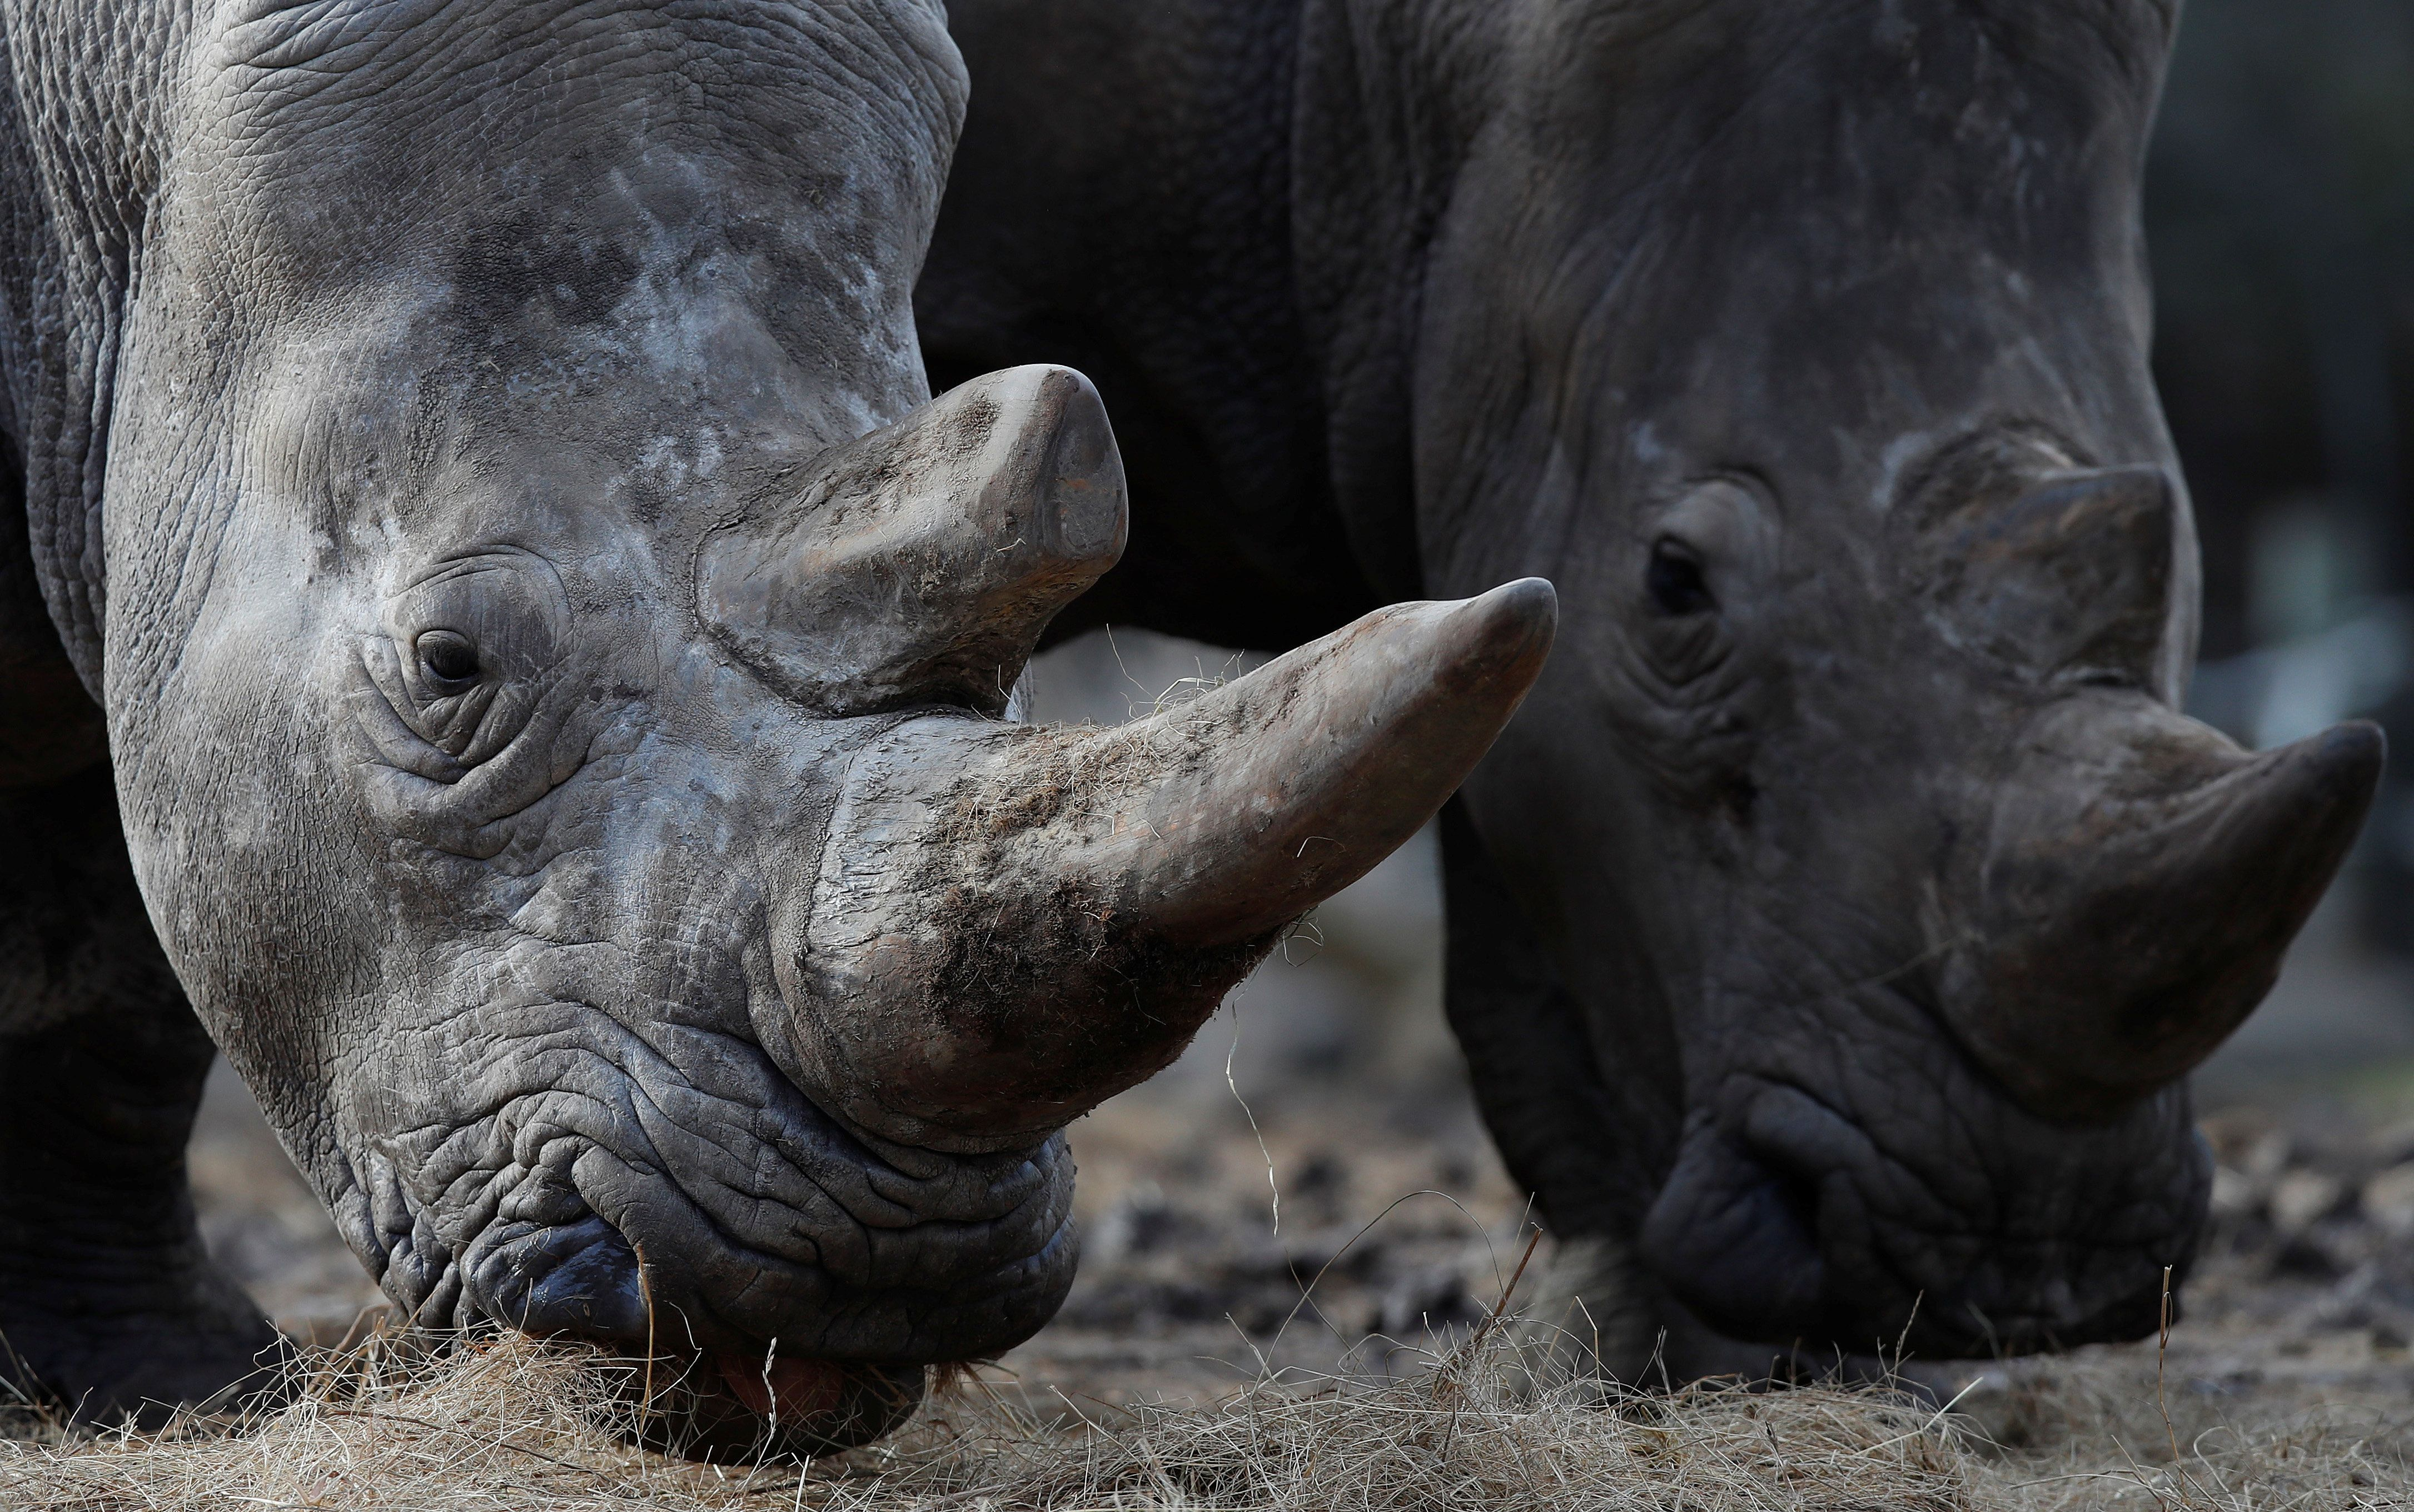 White rhinoceros Bruno (R) and Gracie are seen in their enclosure at Thoiry zoo and wildlife park, about 50 km (30 miles) west of Paris, France, March 7, 2017. Poachers broke into the zoo last night, shot dead four-year-old male white rhino called Vince, and sawed off its horn in what is believed to be the first time in Europe that a rhino in captivity has been attacked and killed. REUTERS/Christian Hartmann